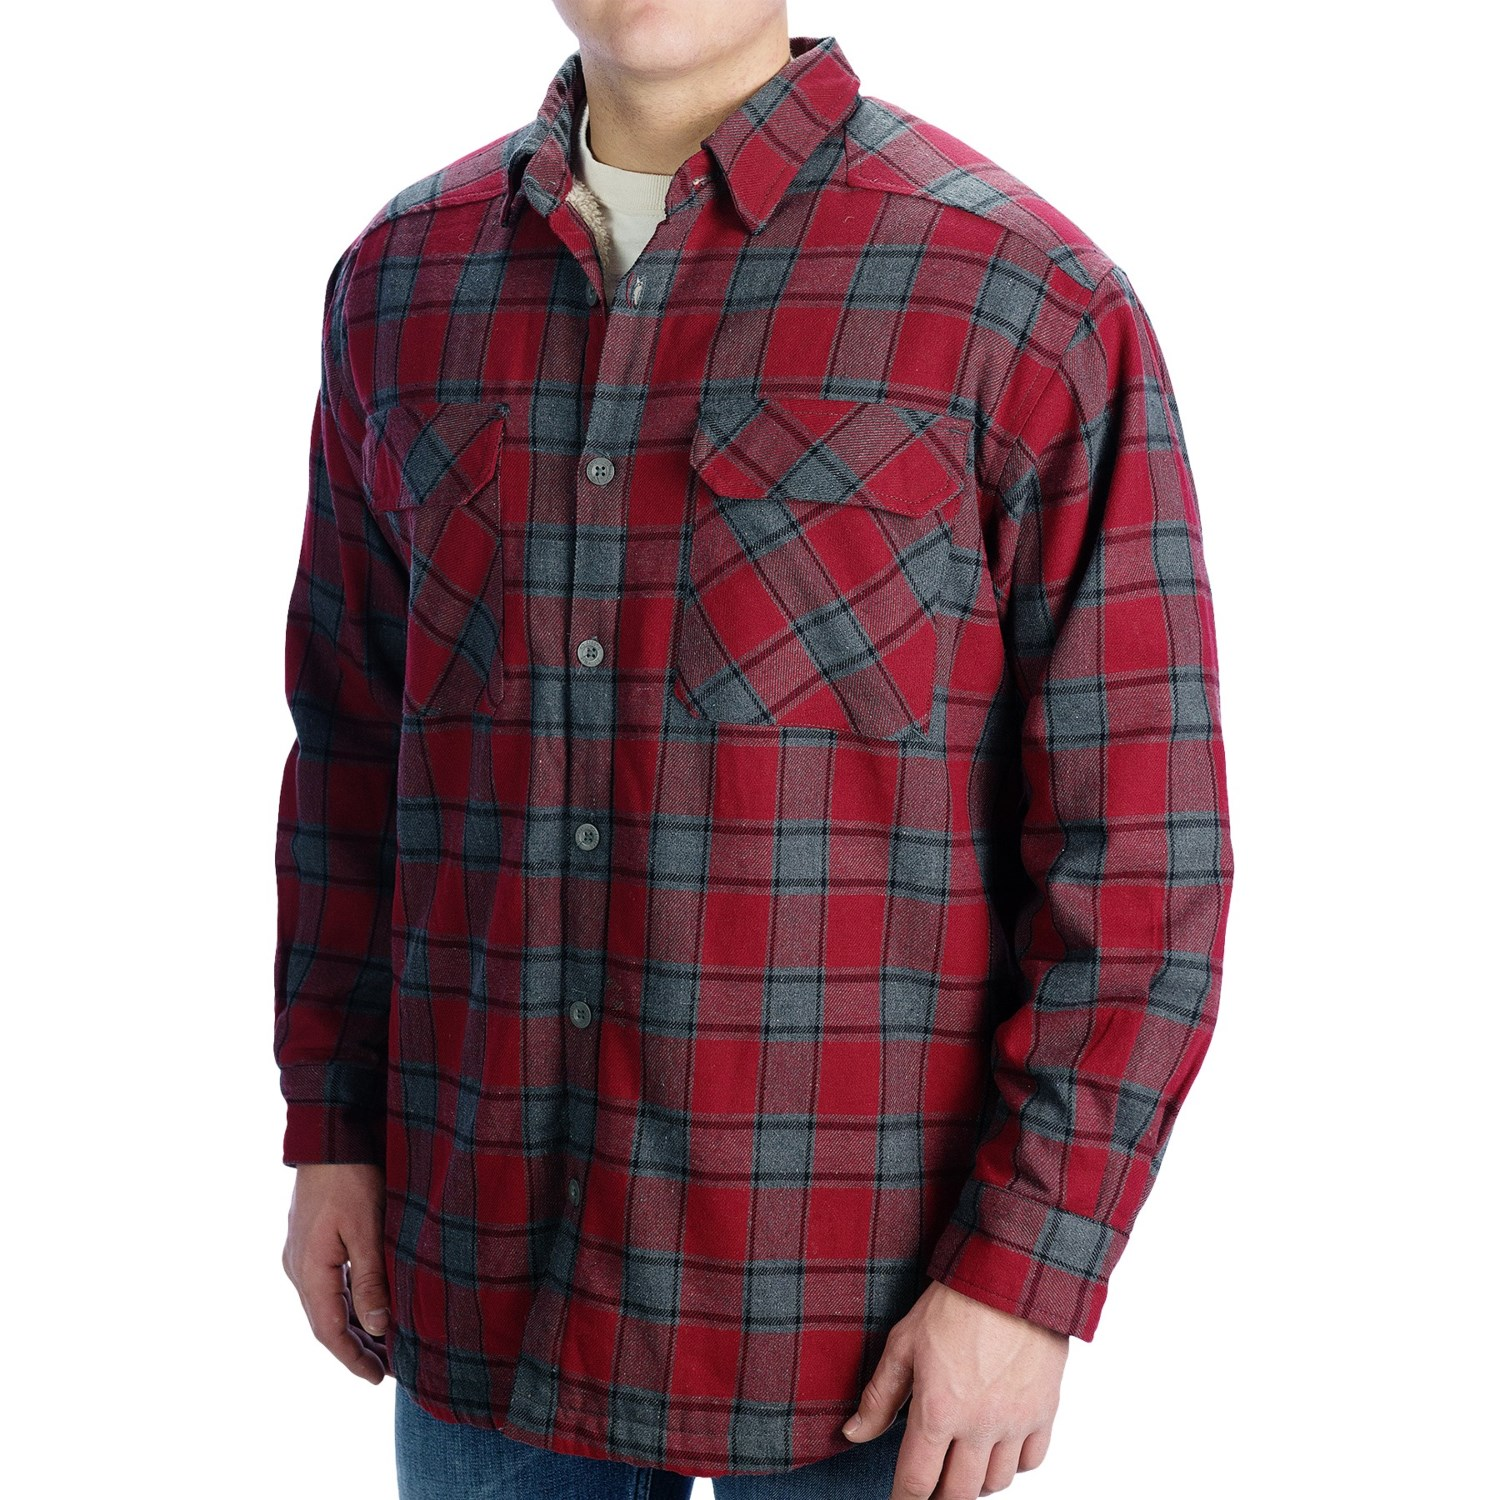 stillwater supply co flannel shirt jacket fleece lined for men save 39. Black Bedroom Furniture Sets. Home Design Ideas